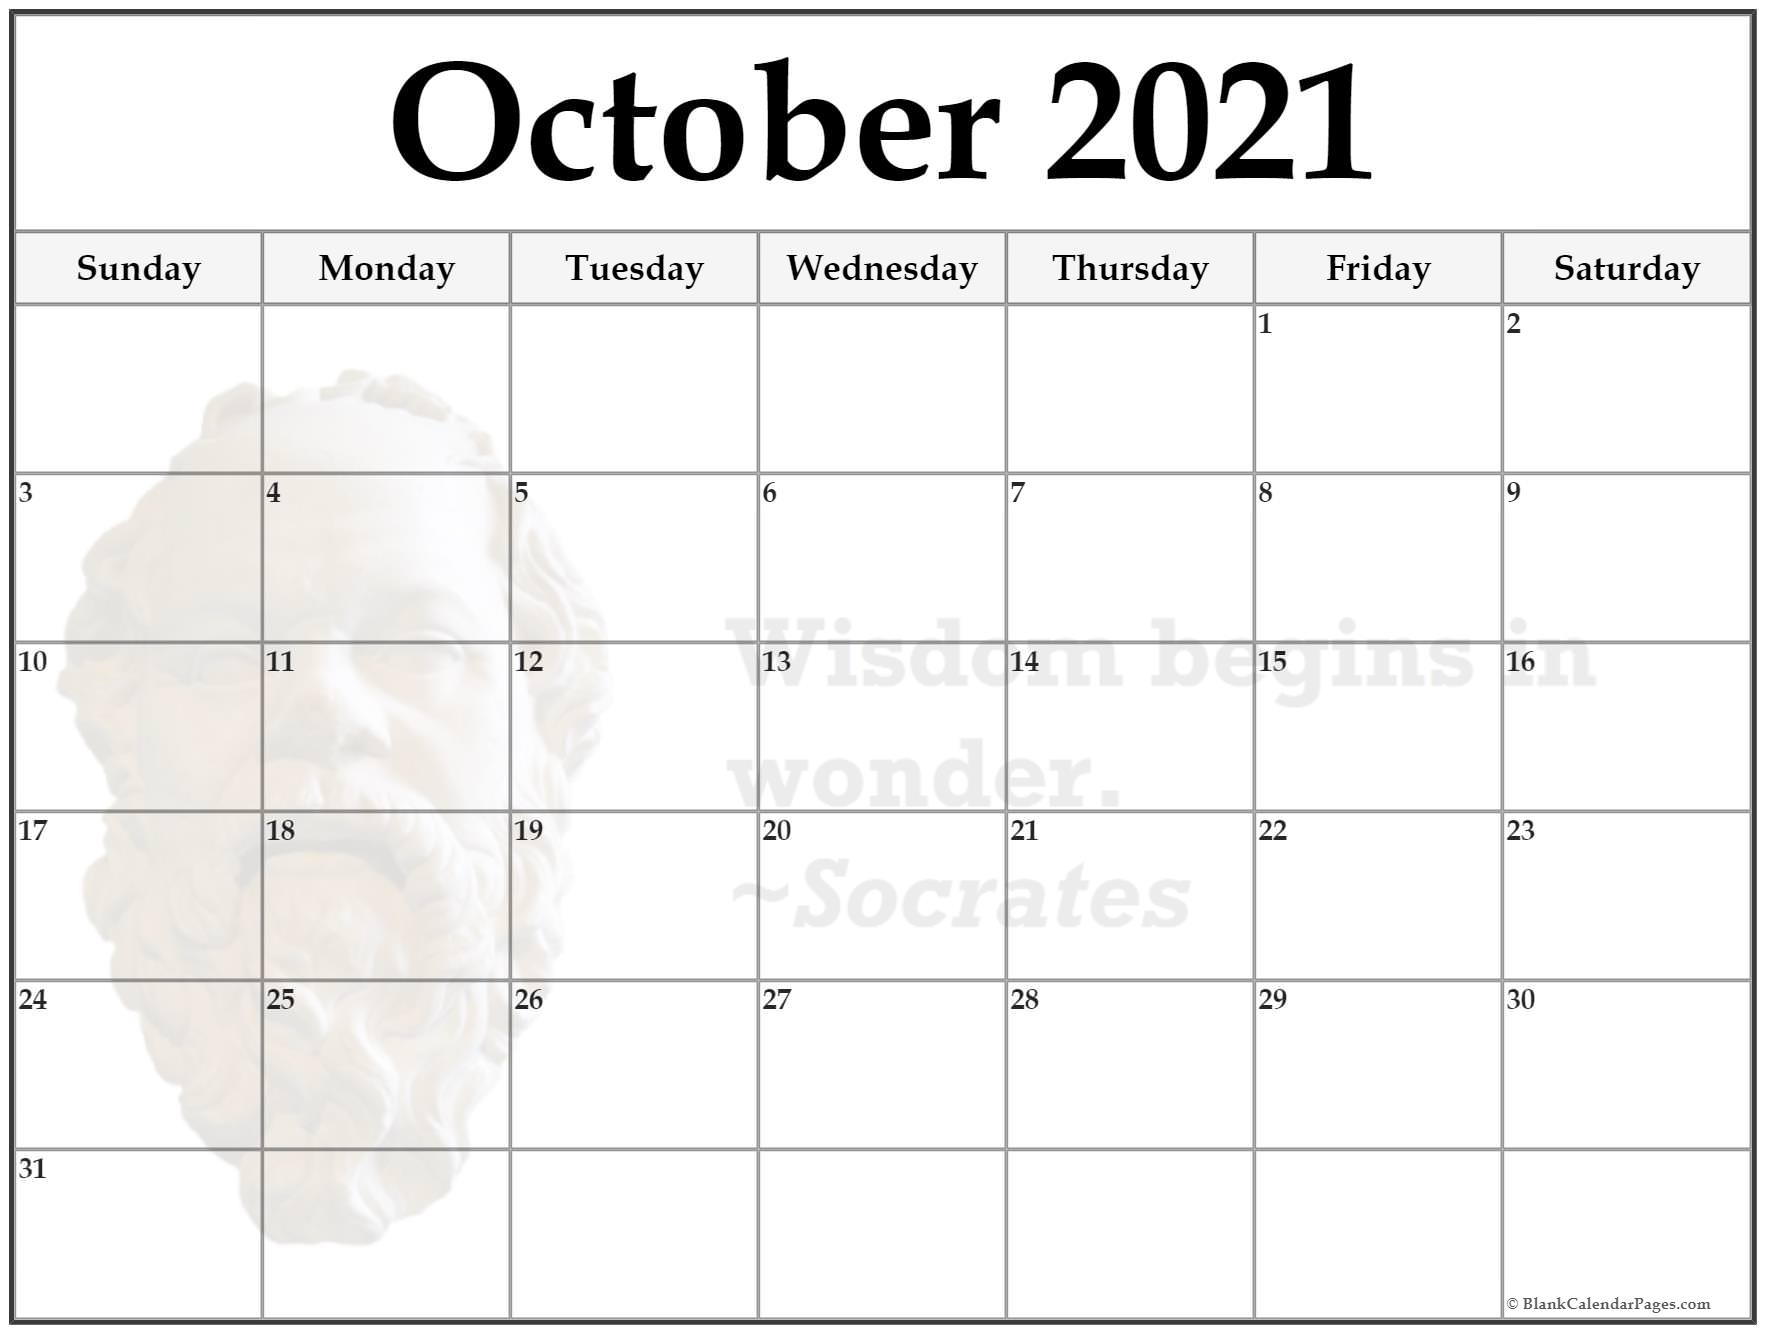 October 2020 monthly quote calendar template. Wisdom begins in wonder. ~Socrates